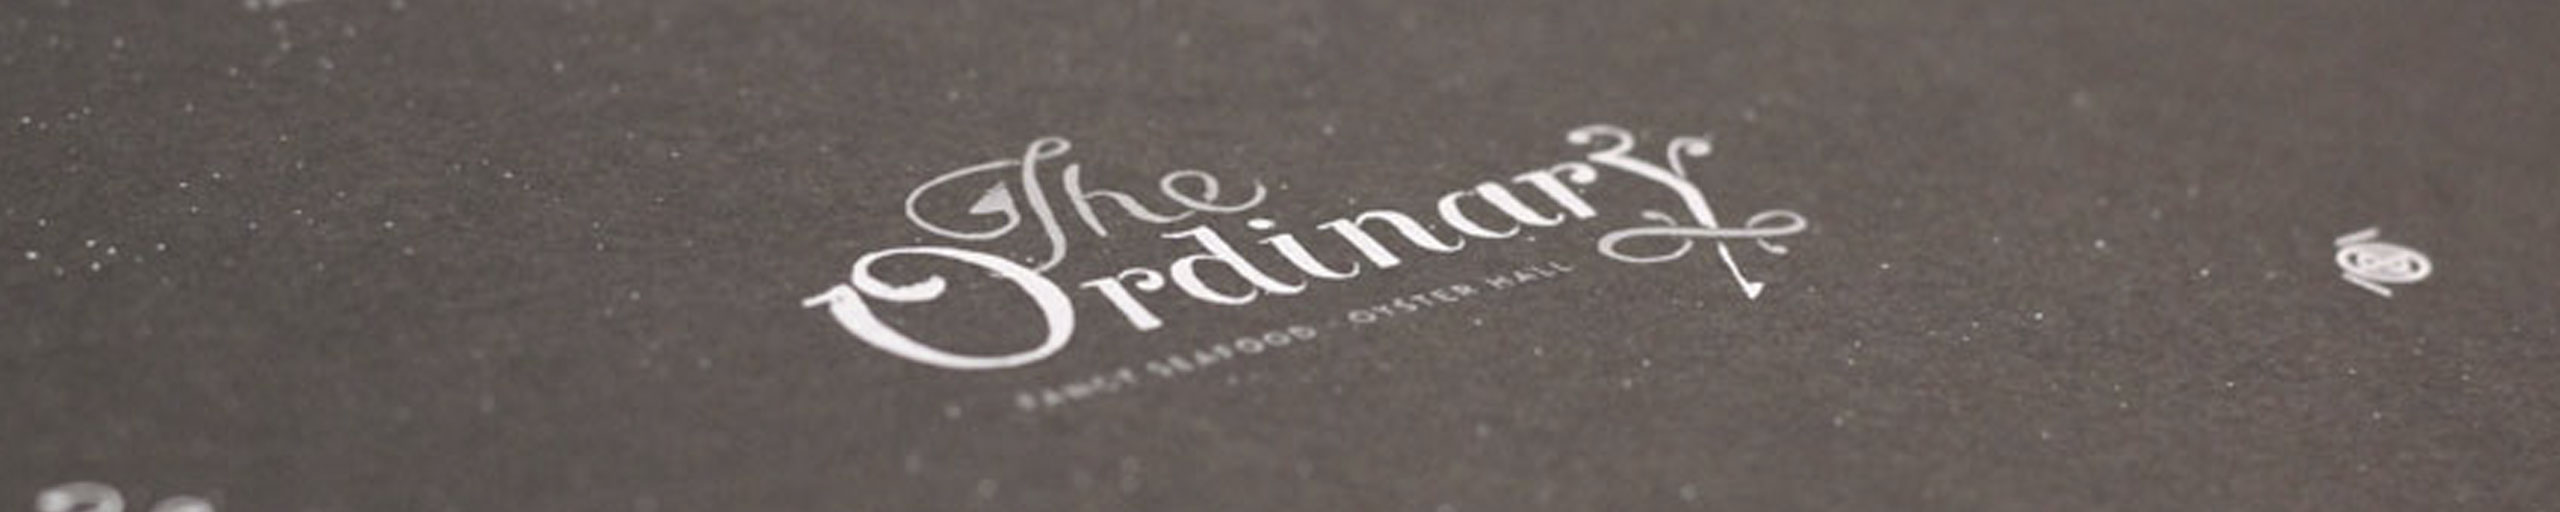 The Ordinary Business Cards by Fuzzco